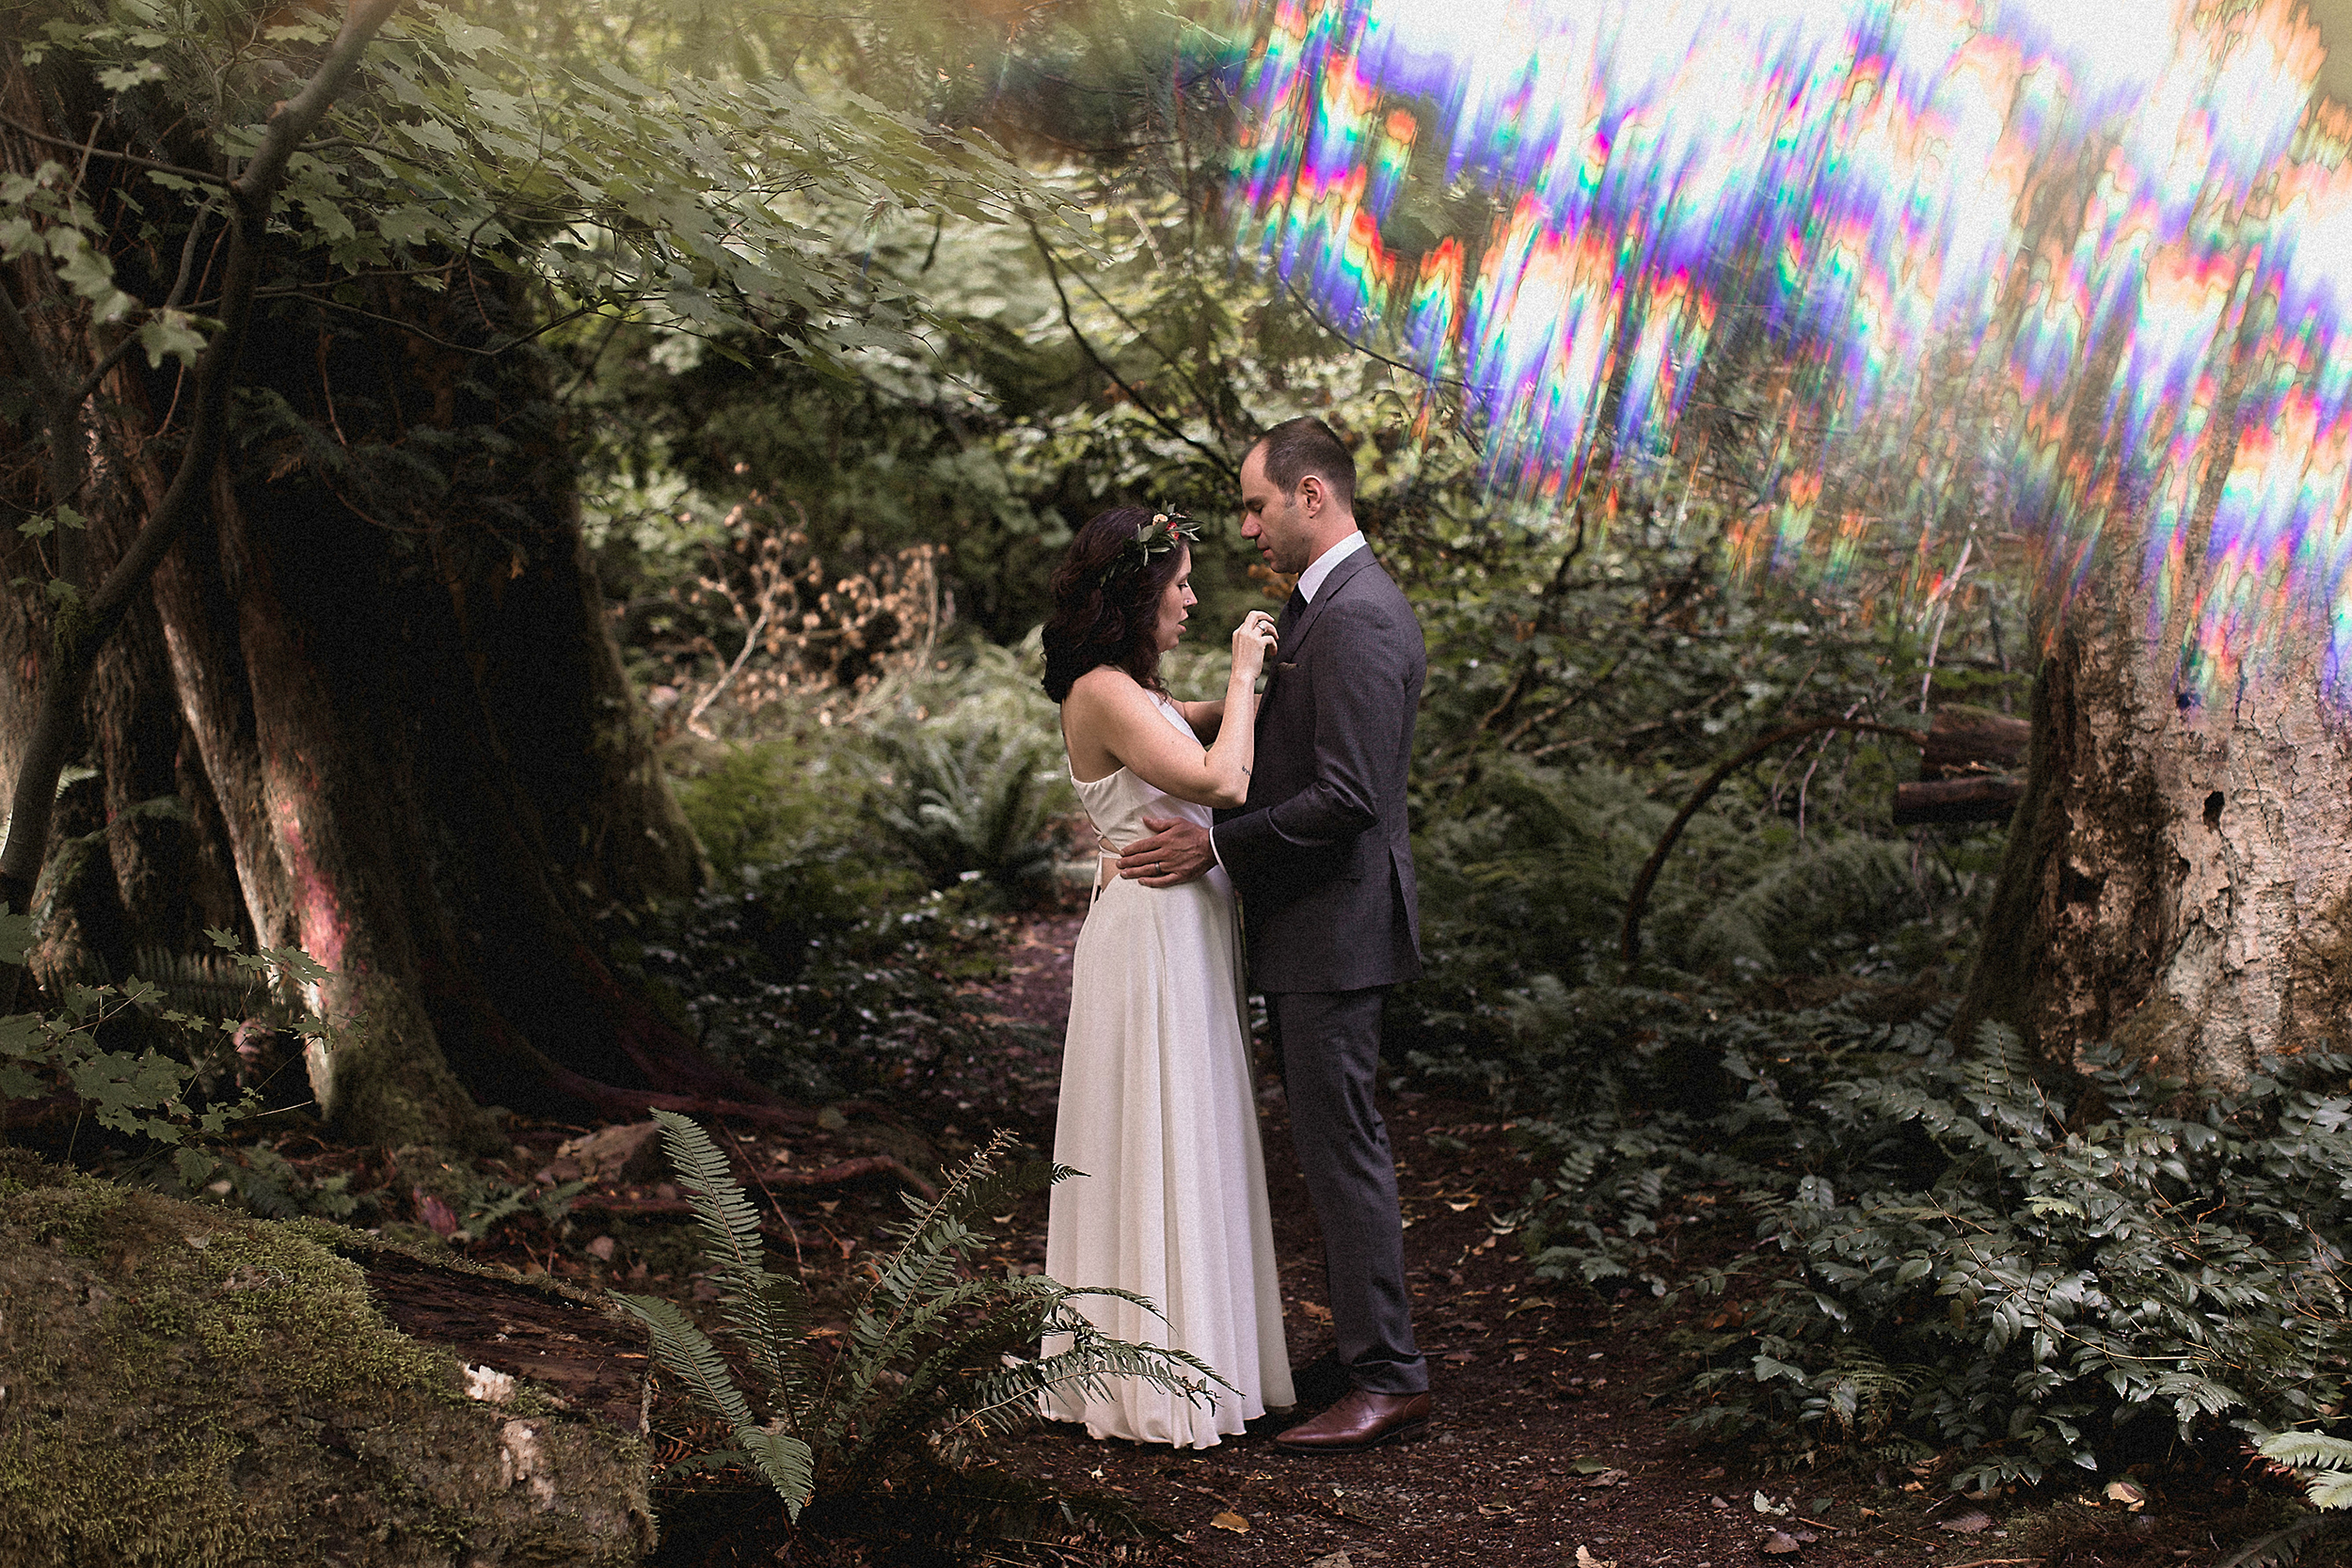 rainbow forest bride and groom photo shoot, pack your own rainbow